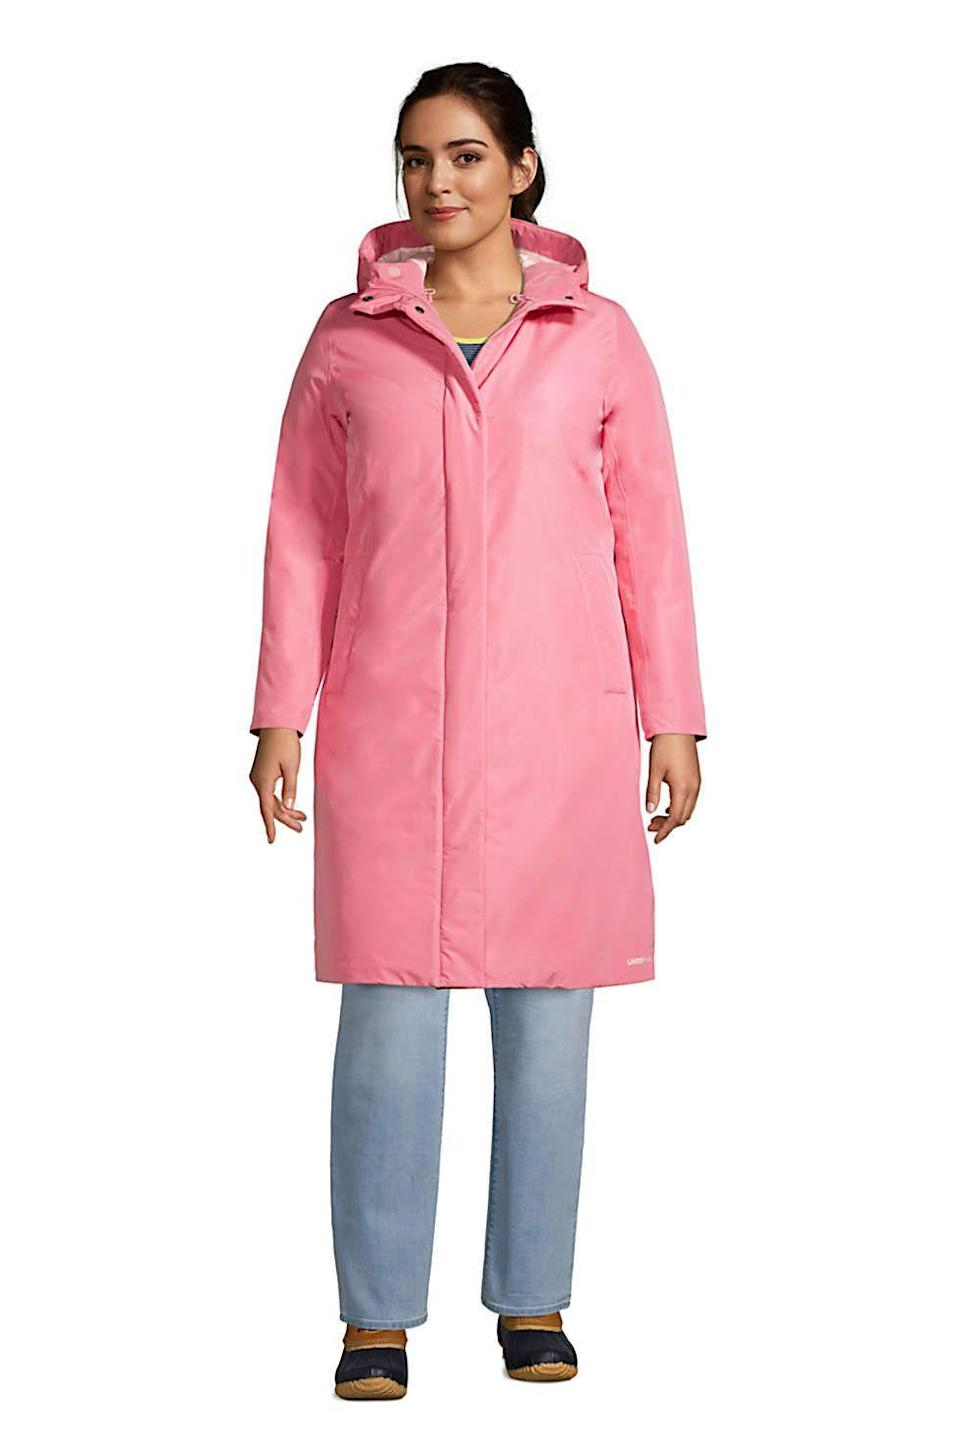 """<p><strong>Land's End</strong></p><p>landsend.com</p><p><strong>$150.00</strong></p><p><a href=""""https://go.skimresources.com?id=74968X1525079&xs=1&url=https%3A%2F%2Fwww.landsend.com%2Fproducts%2Fwomens-plus-size-insulated-raincoat%2Fid_343211%3Fattributes%3D21927%26source%3DGS%26currency%3DUSD%26geo%3DUS%26skumv%3D5573868%26promotion-code%3DKITE%26promotion-pin%3D0"""" rel=""""nofollow noopener"""" target=""""_blank"""" data-ylk=""""slk:Shop Now"""" class=""""link rapid-noclick-resp"""">Shop Now</a></p><p>A tried-and-true classic, Land's End's traditional raincoat is updated in a bubblegum-pink color that gives it a more fashionable feel. The insulated interior is an added bonus.</p>"""